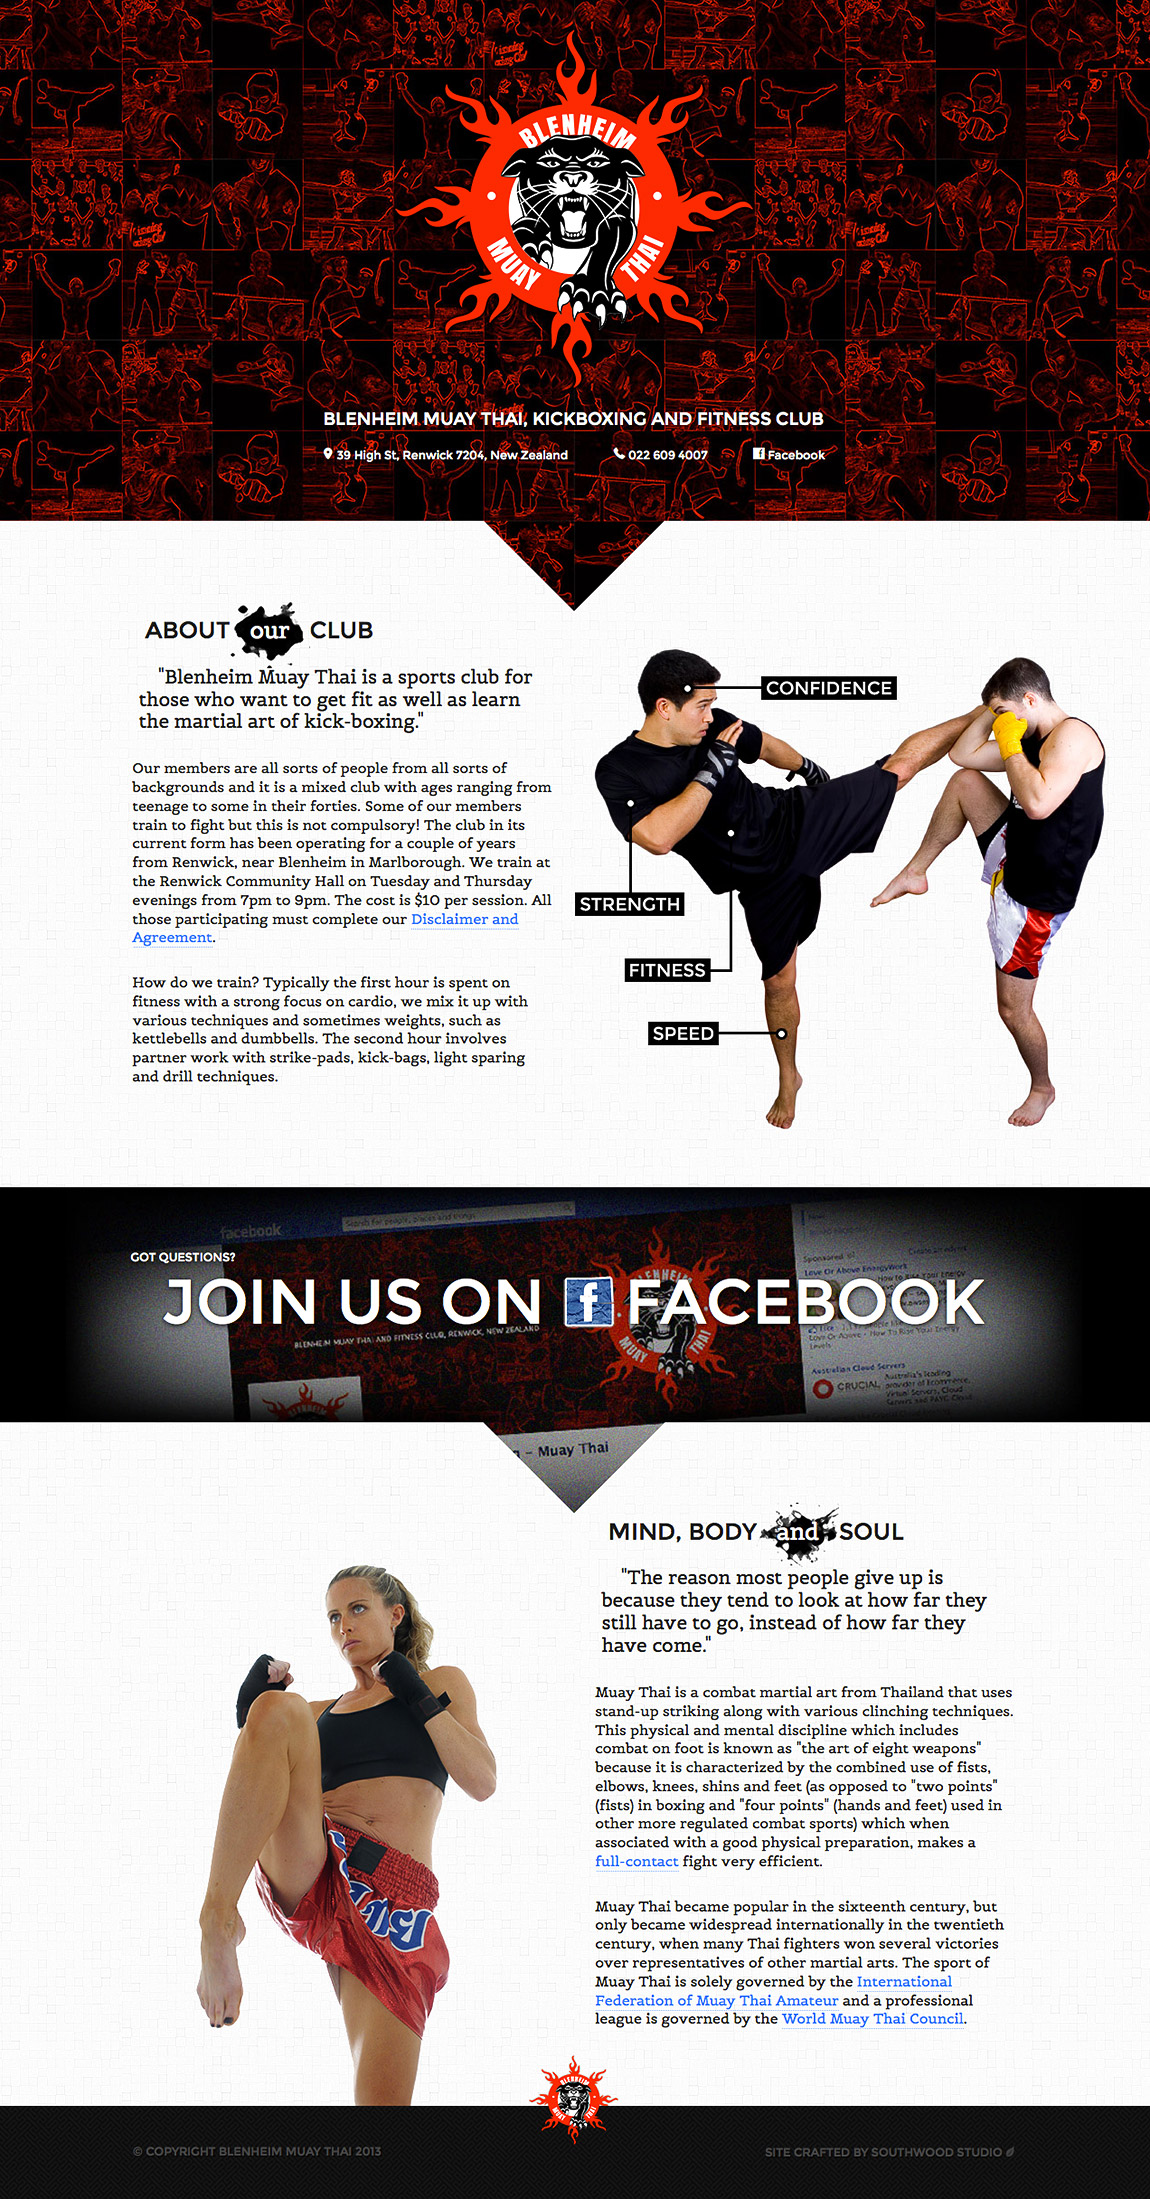 Blenheim Muay Thai Website Screenshot